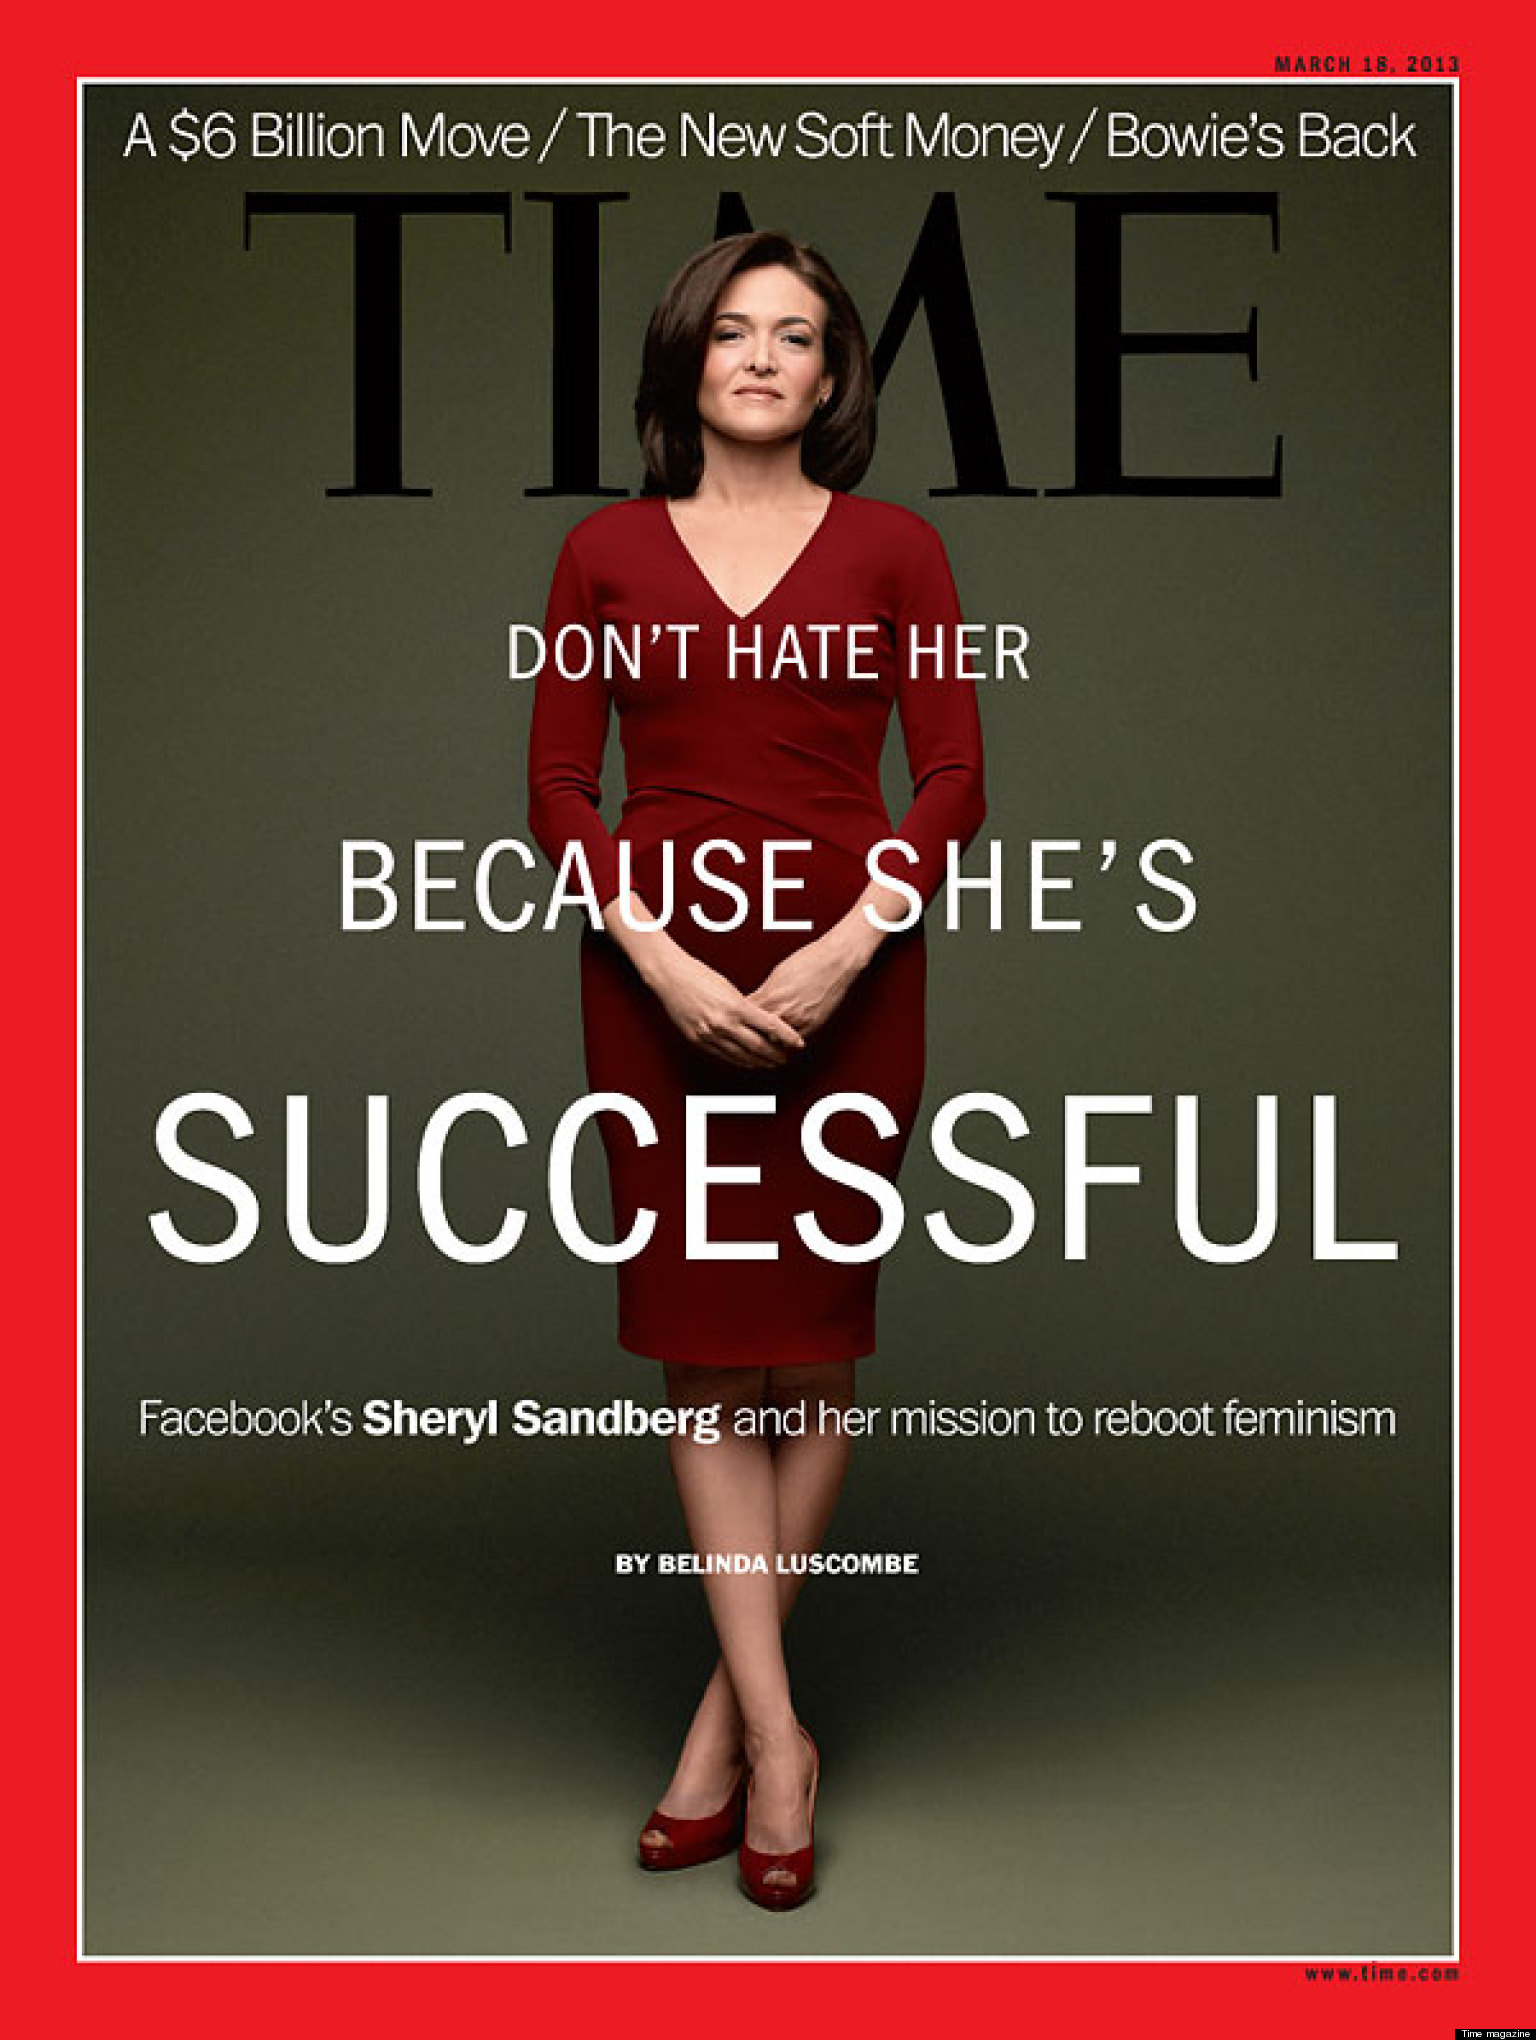 Wonder Where the Women in Power Are? Look to Silicon Valley